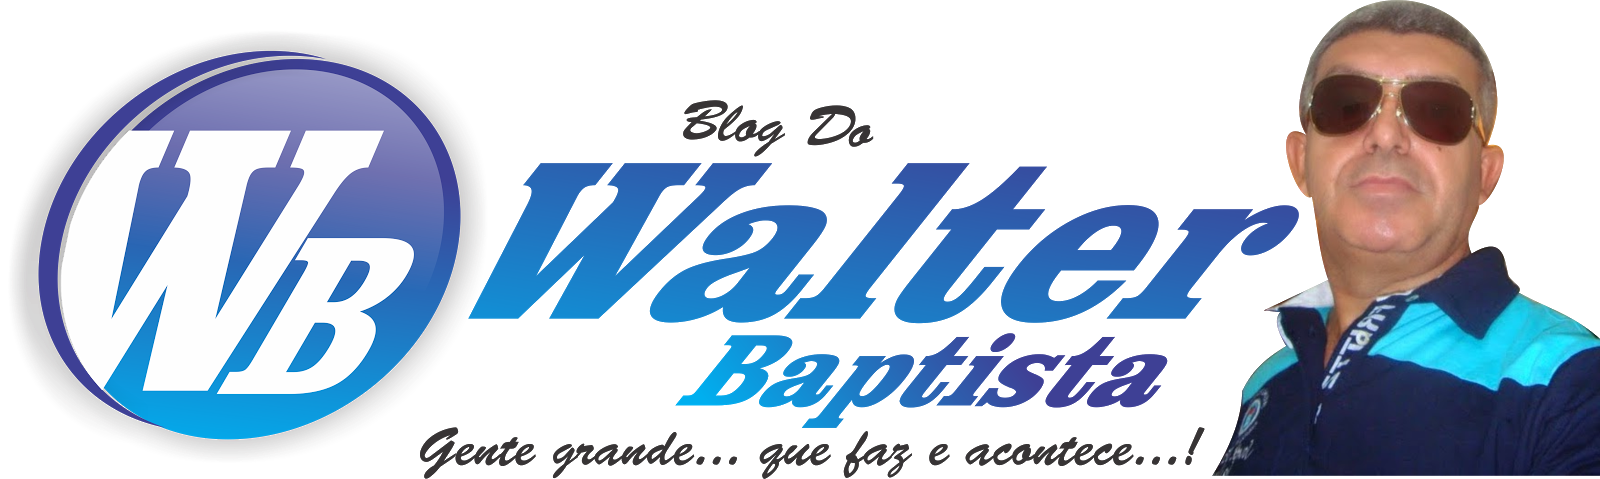 Blog do Walter Baptista